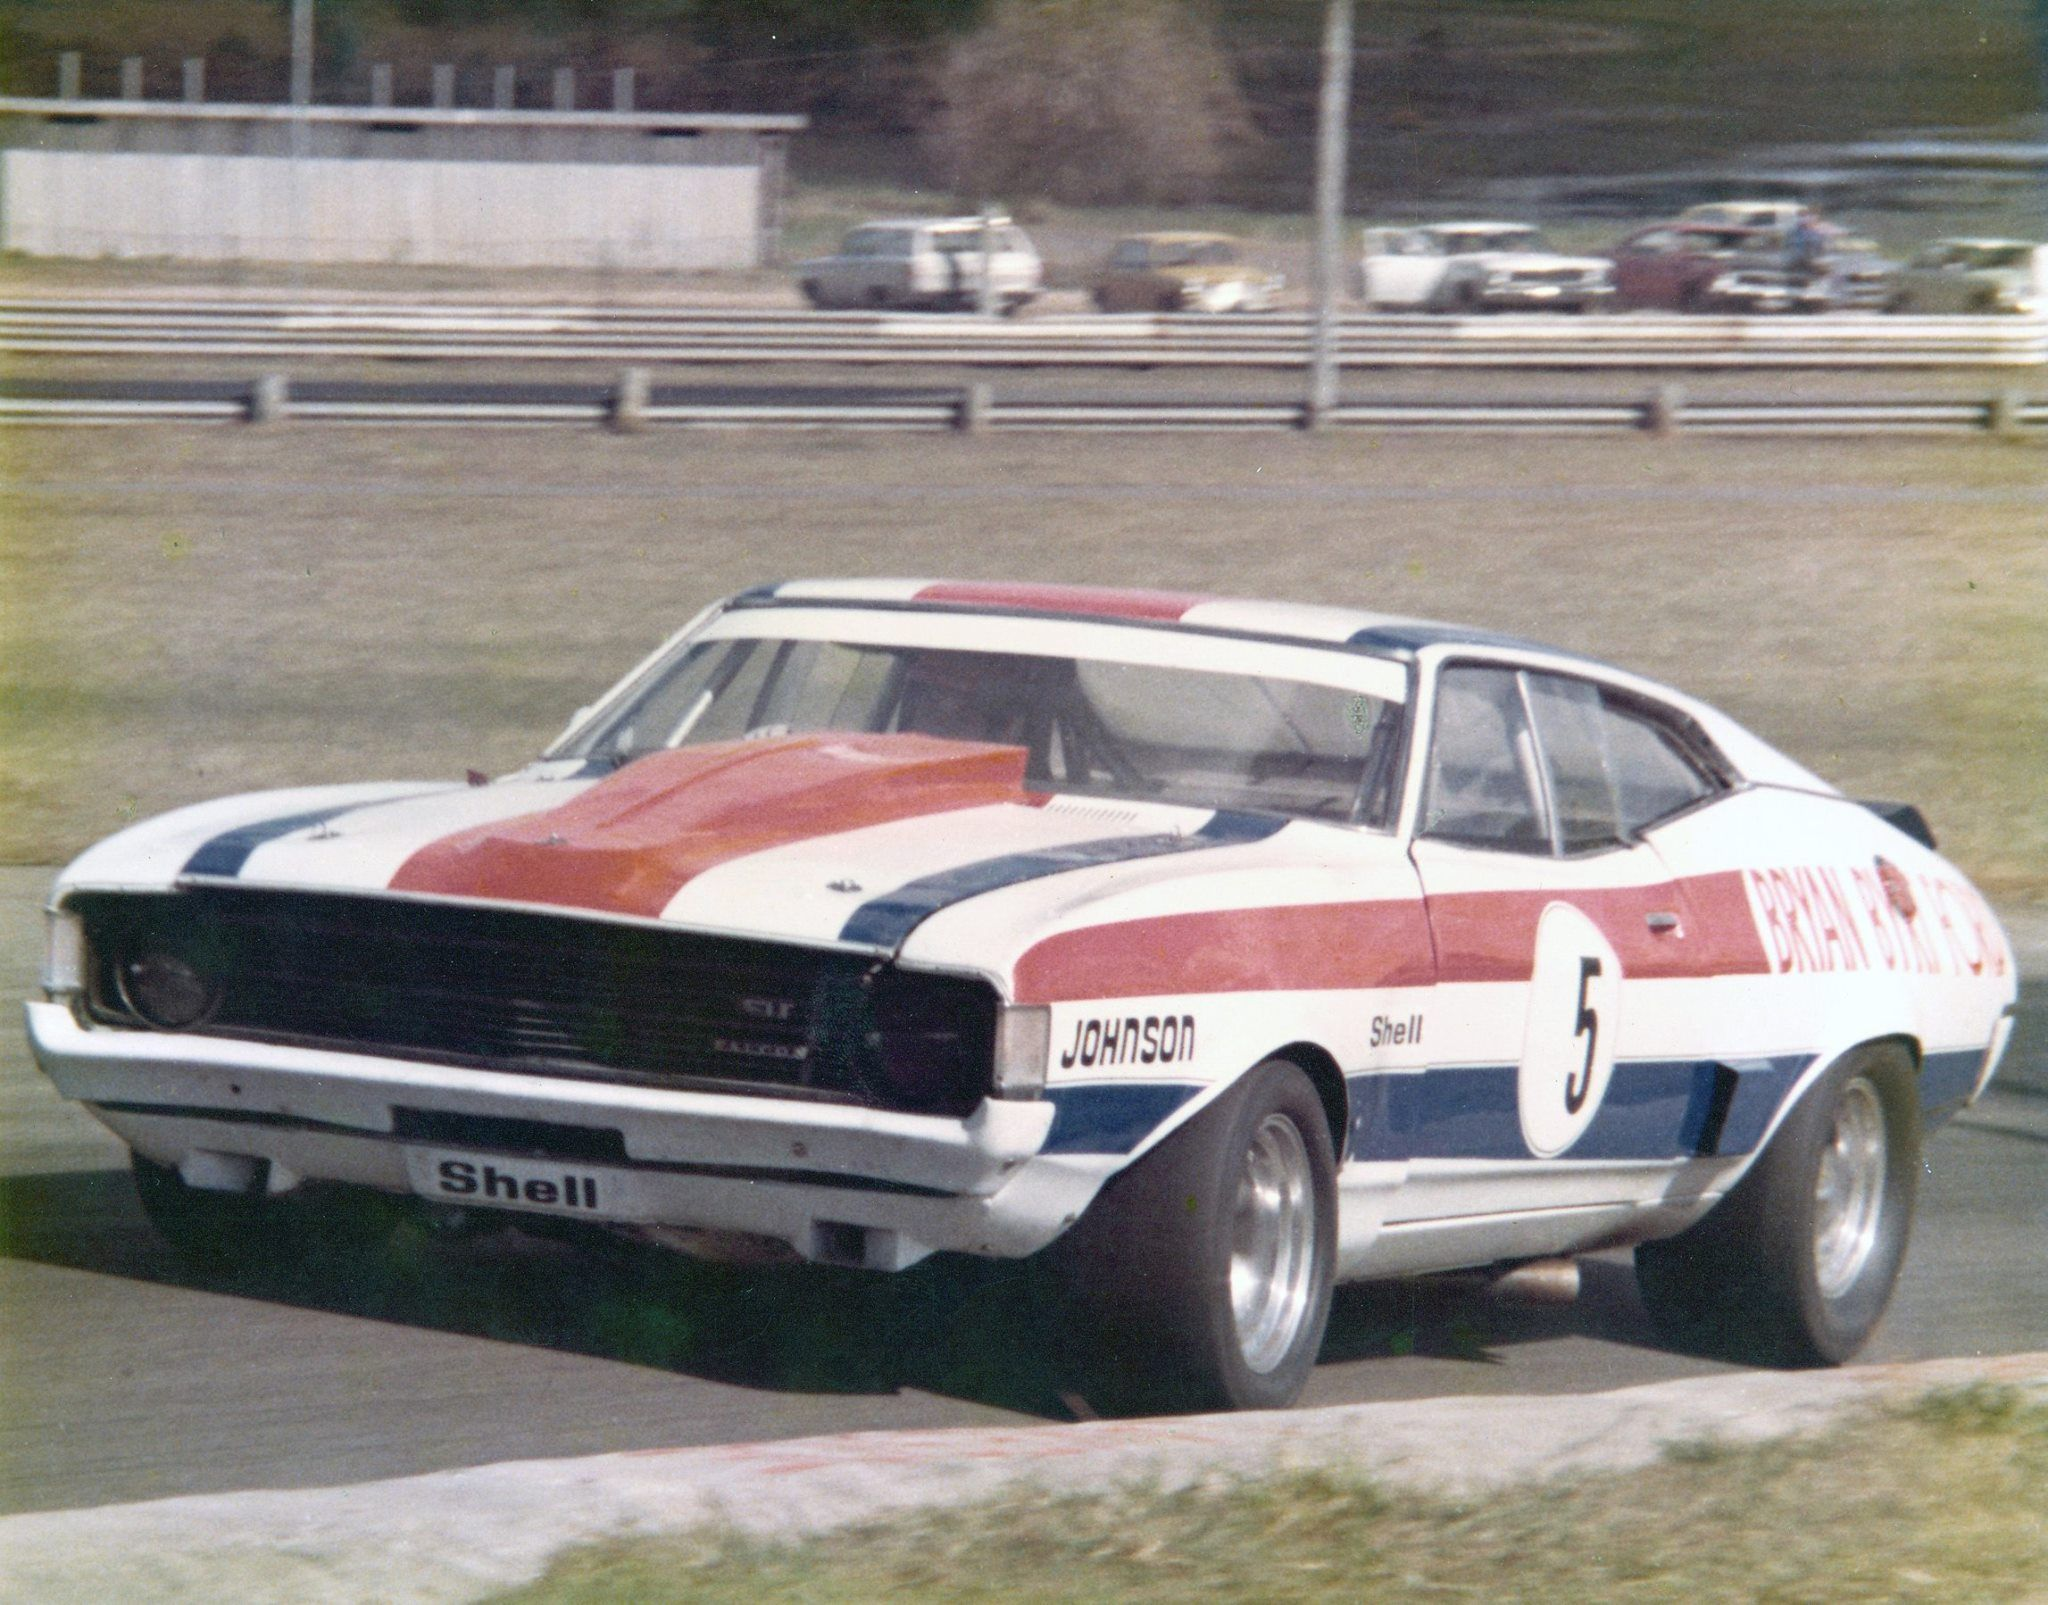 Pin by Ken on Old school | Pinterest | Ford, Cars and Ford falcon